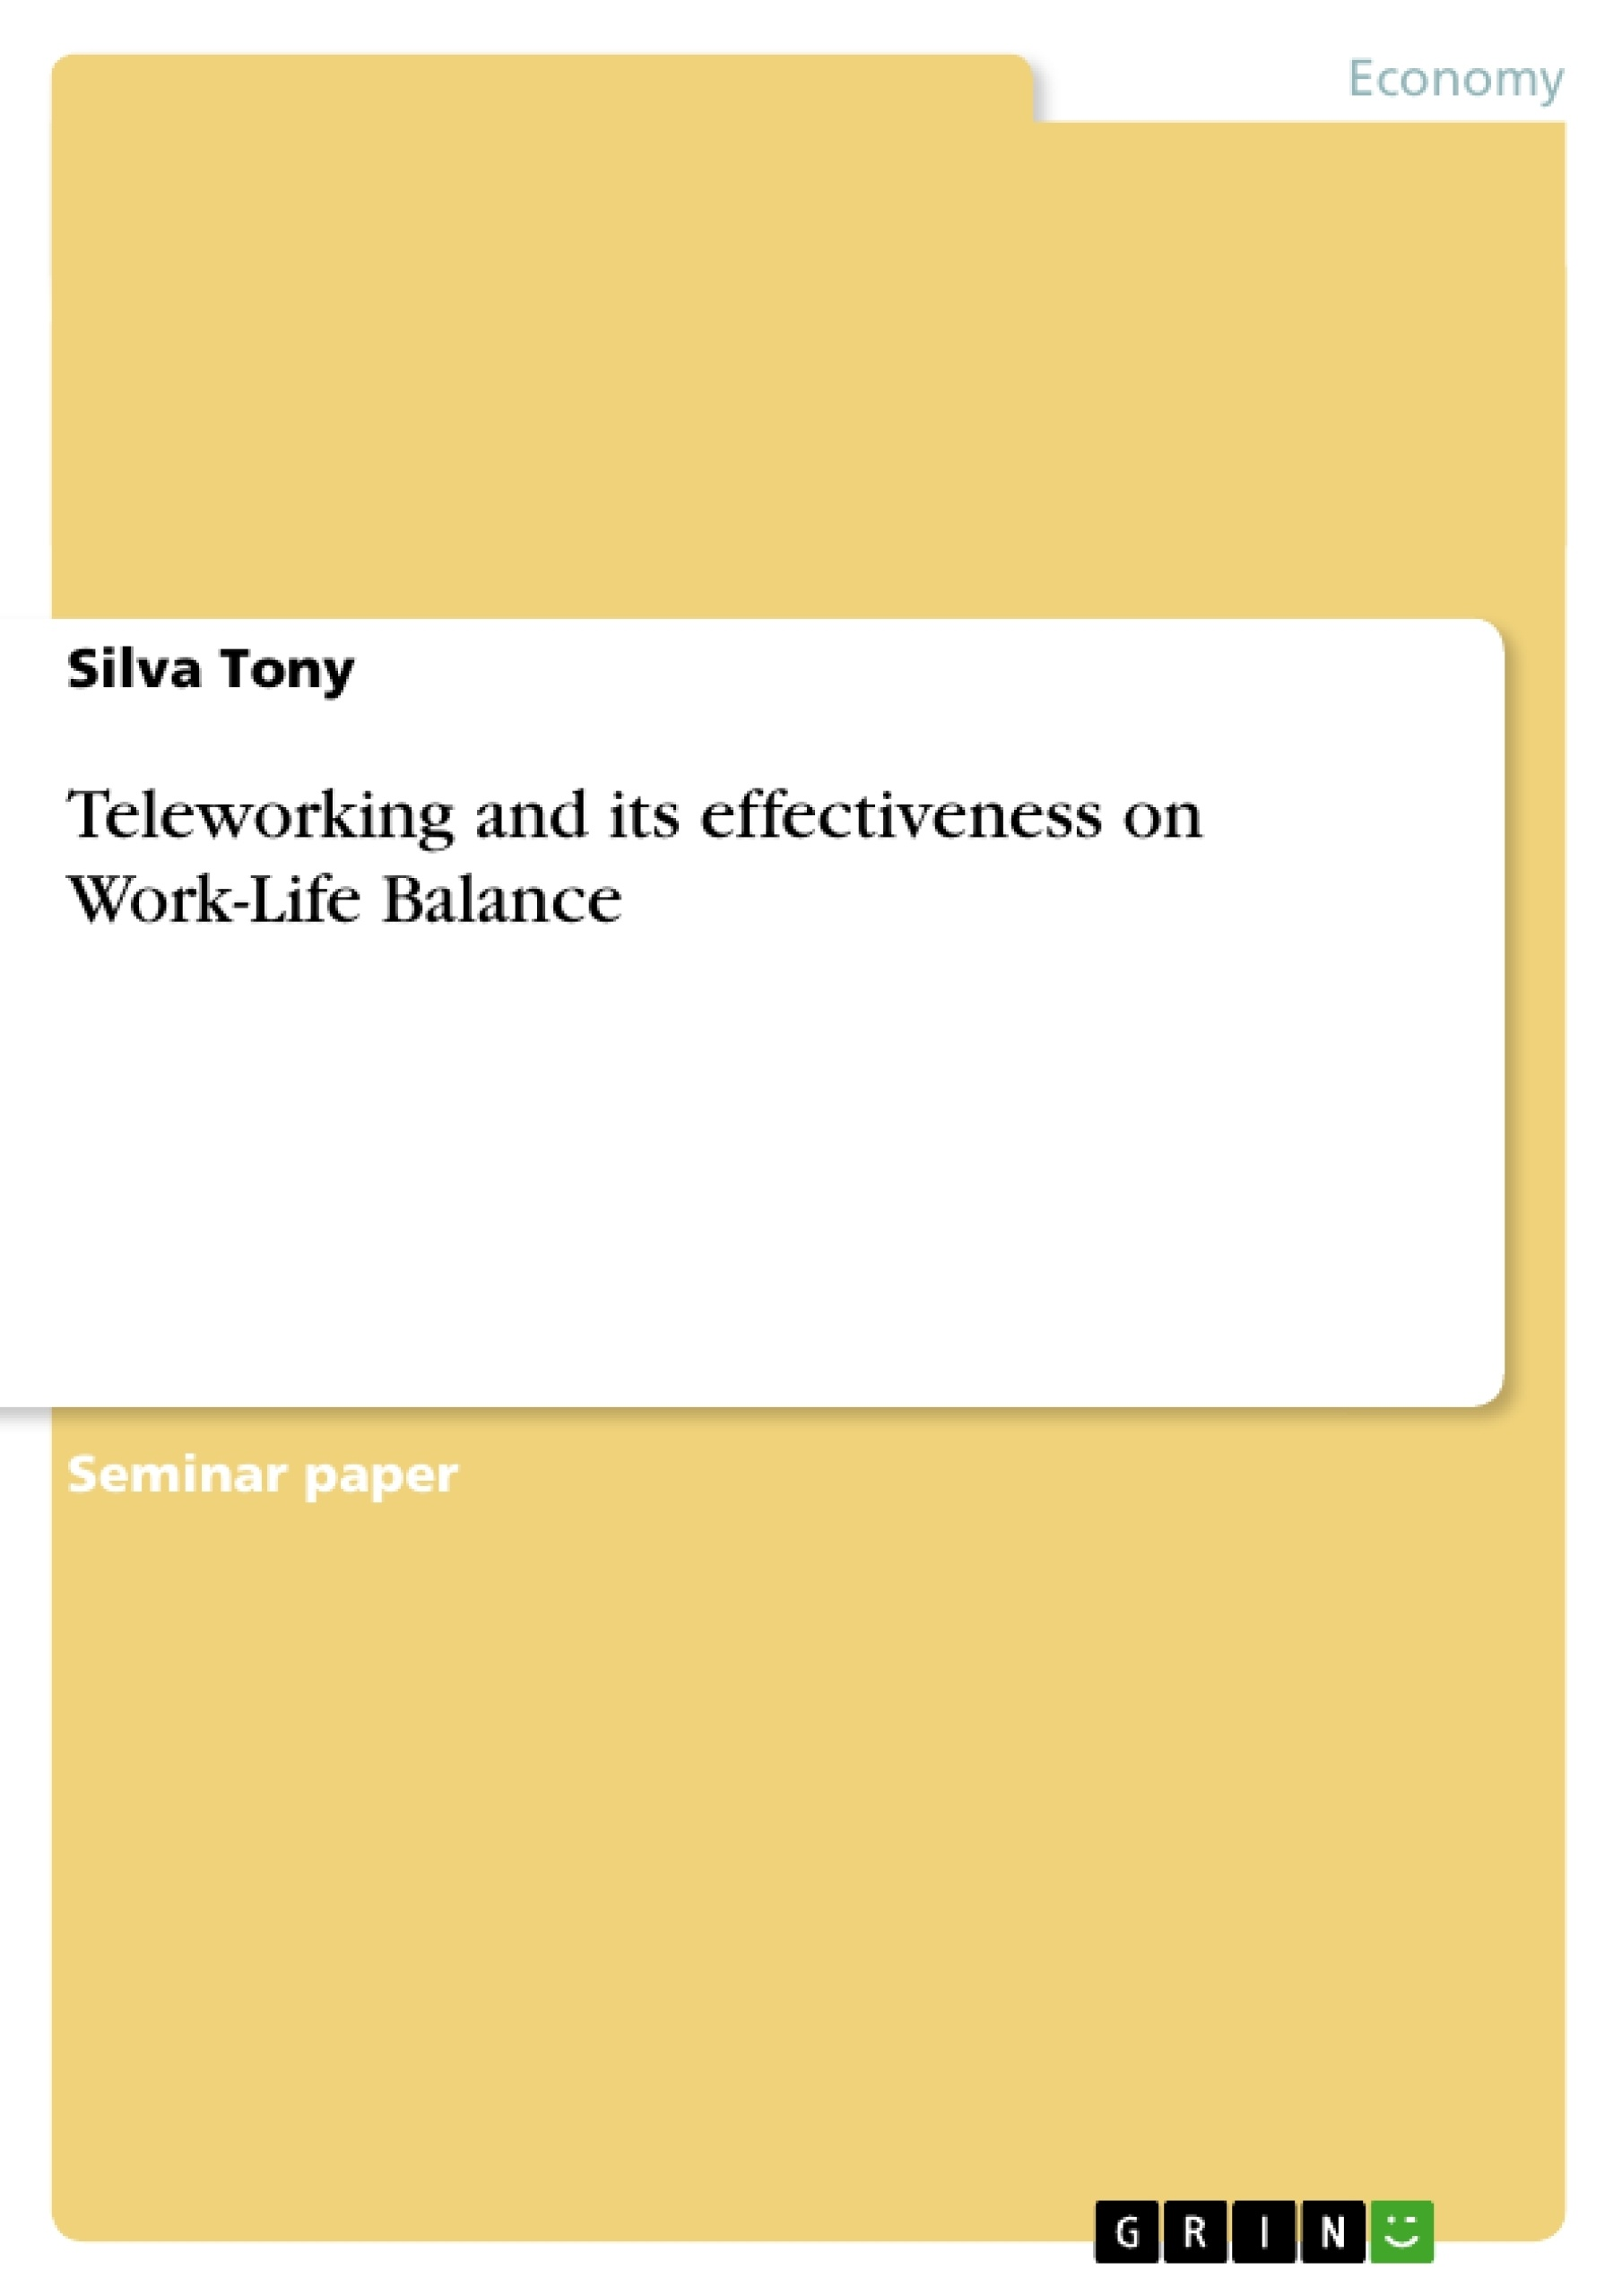 work life balance phd thesis Dissertation on work life balance among female workers harvard business review dissertation on work life balance pdf demeter essay demeter essay feuille peuplier blanc descriptive essay bloodspear research papers essay on th work life balance pdf publishing your dissertation in a scholarly journal phd thesis.